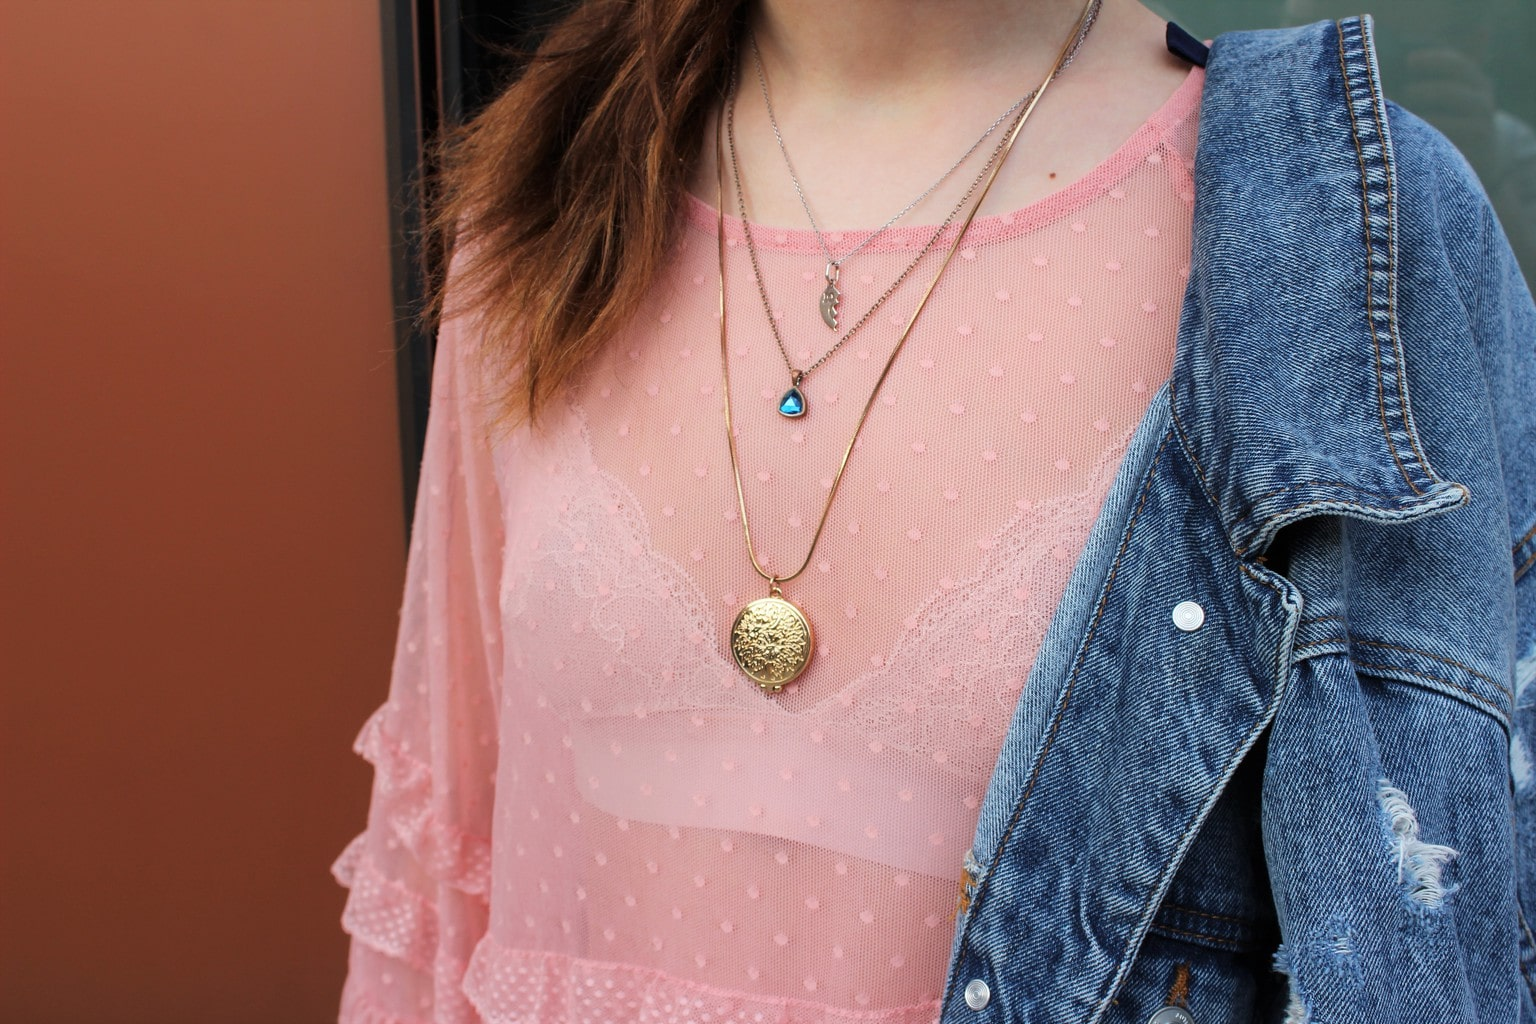 Barnard College student Francesca accessories her sheer, silky pink blouse with layered gold necklaces and a denim jacket.